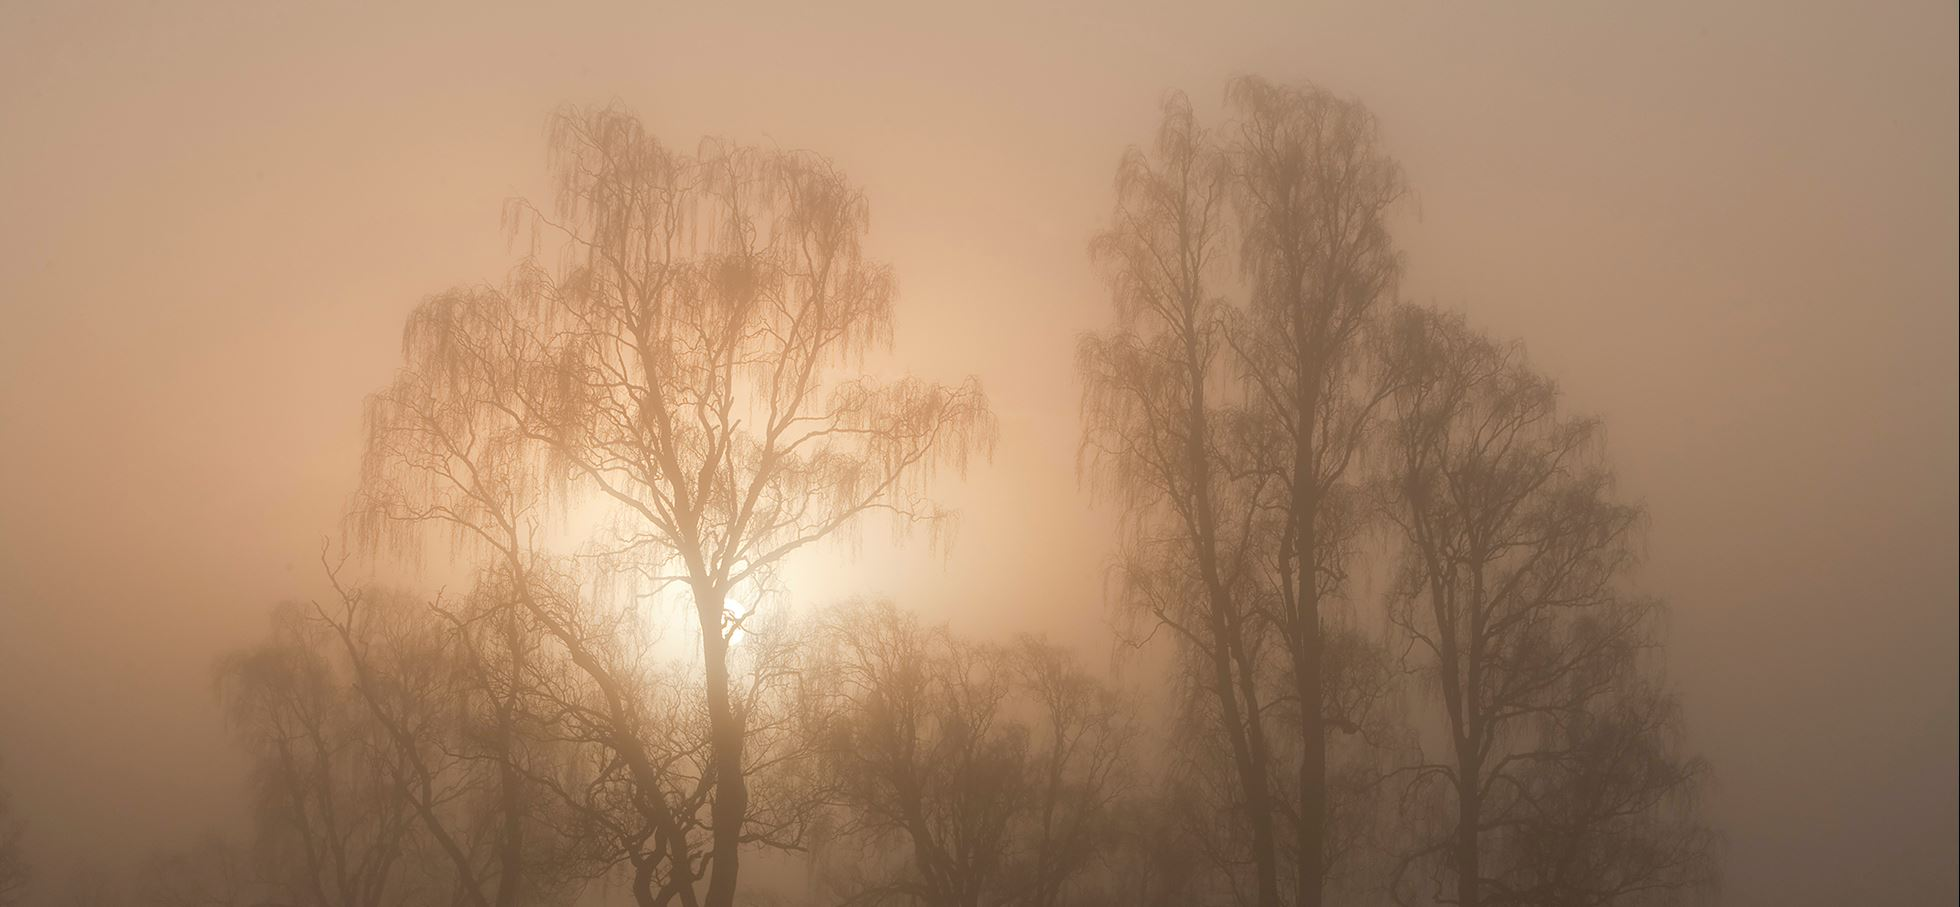 Silver birches silhouetted at dawn, Loch Insh, Cairngorms National Park,  Scotland.